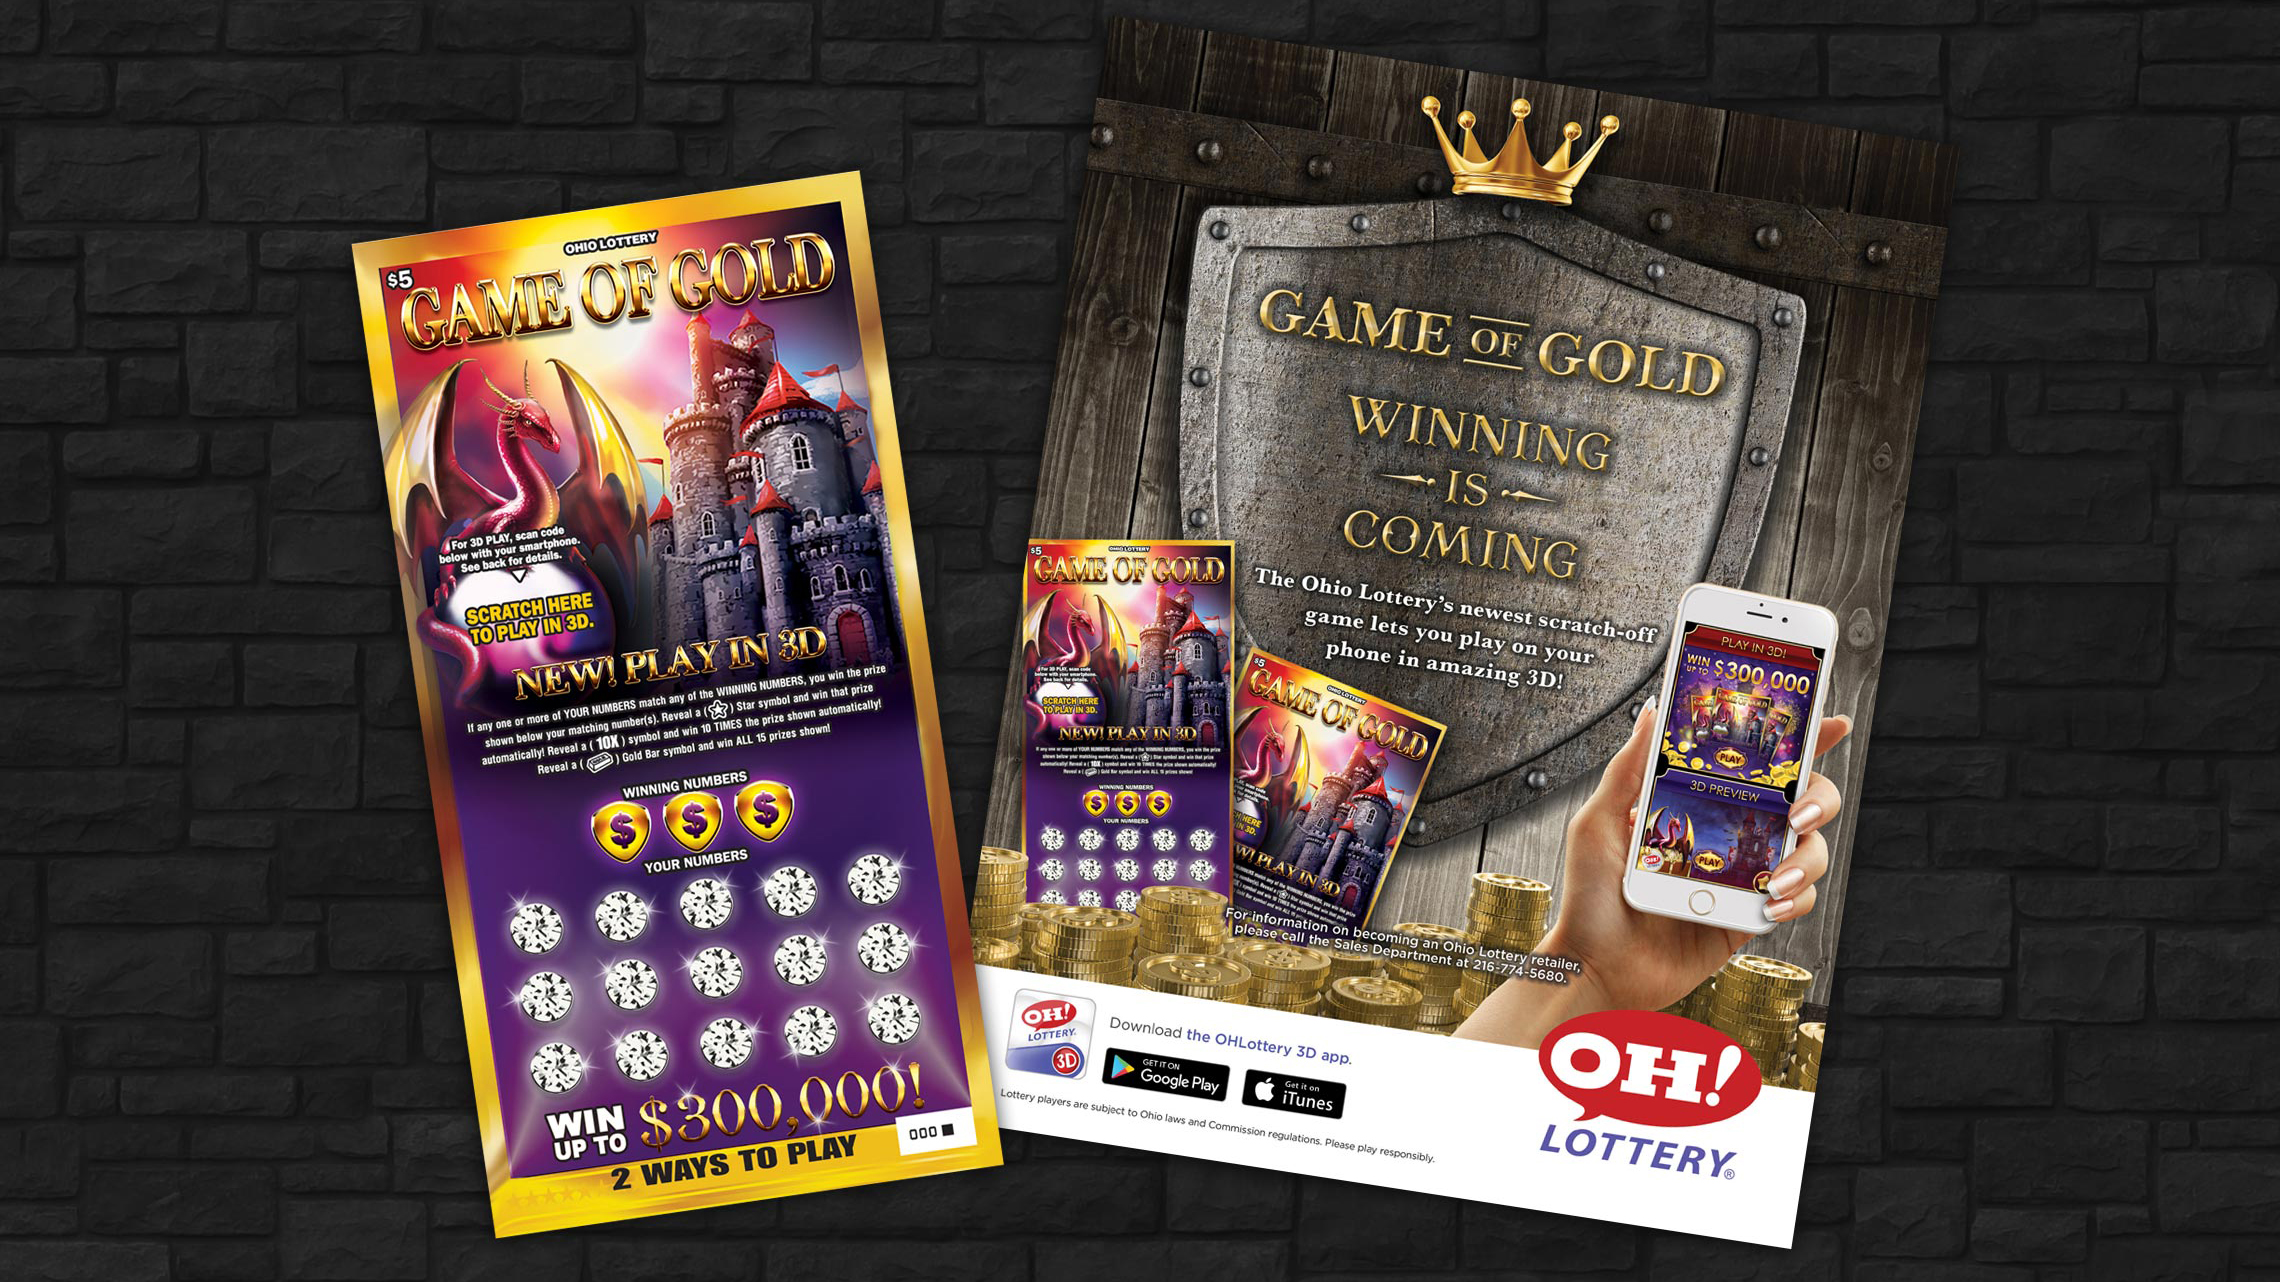 ohio lottery game of gold ticket and poster